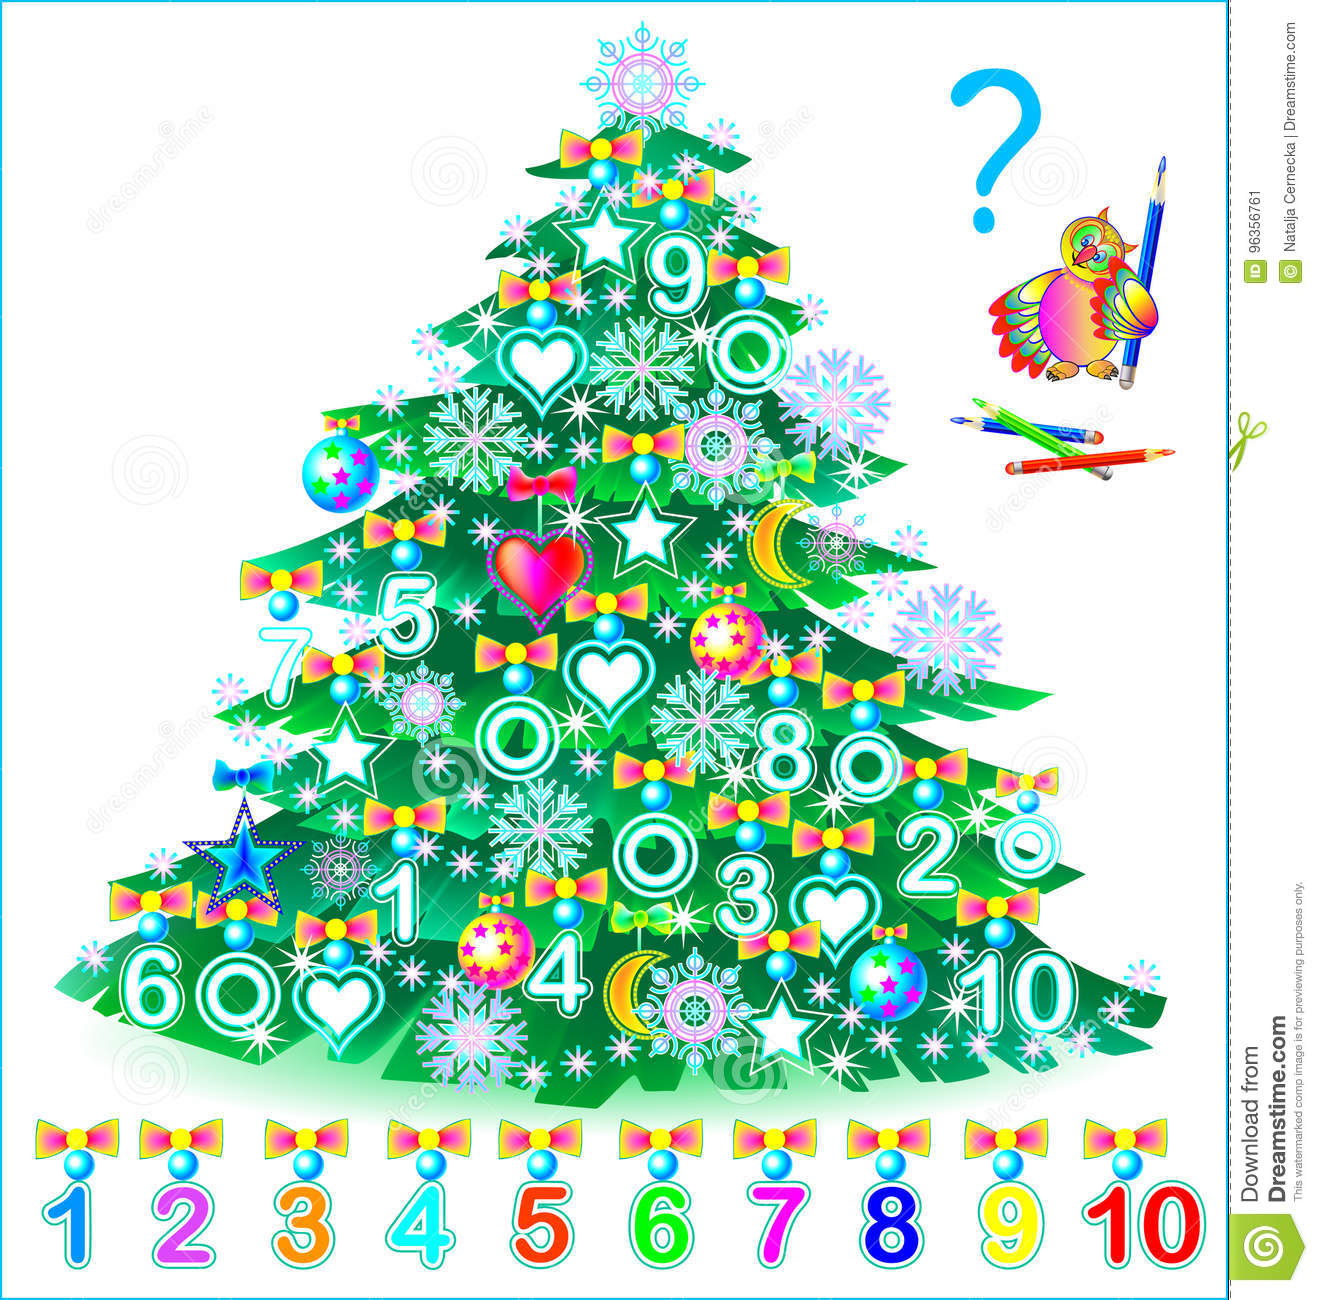 Educational Page For Children. Find The Numbers Hidden In The ...